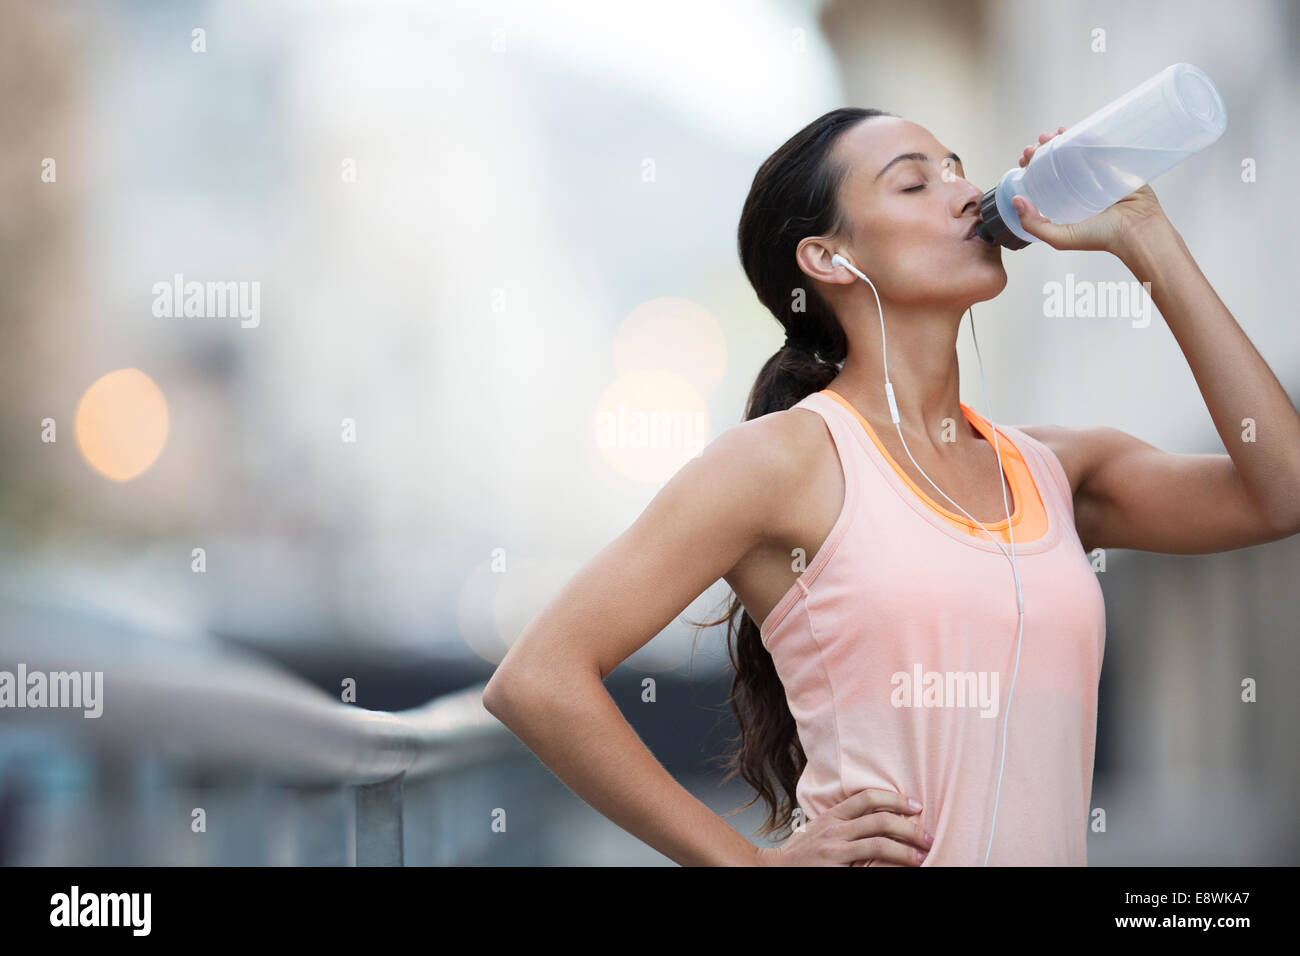 Woman drinking water after exercising on city street - Stock Image